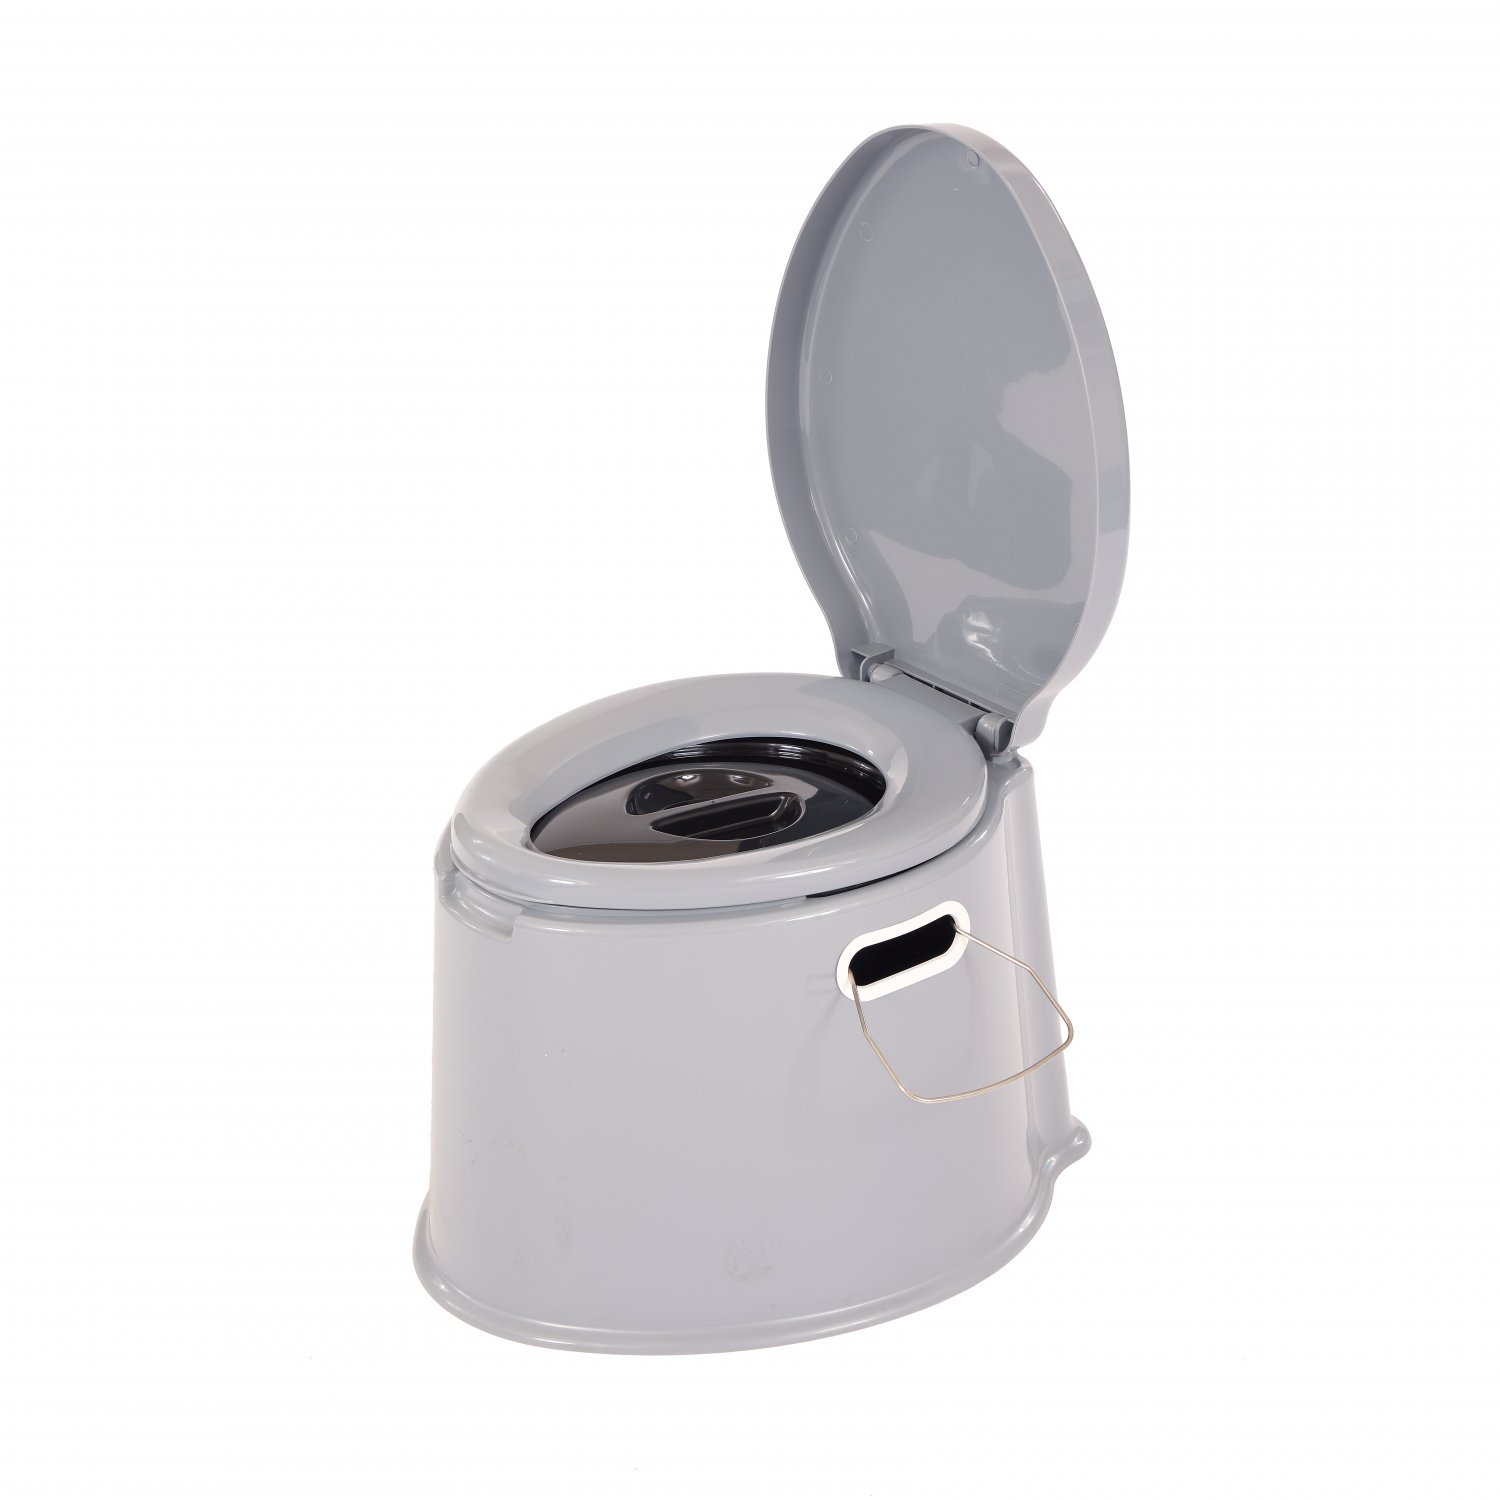 5L Portable Compact Camping Toilet Potty with Removable Bucket